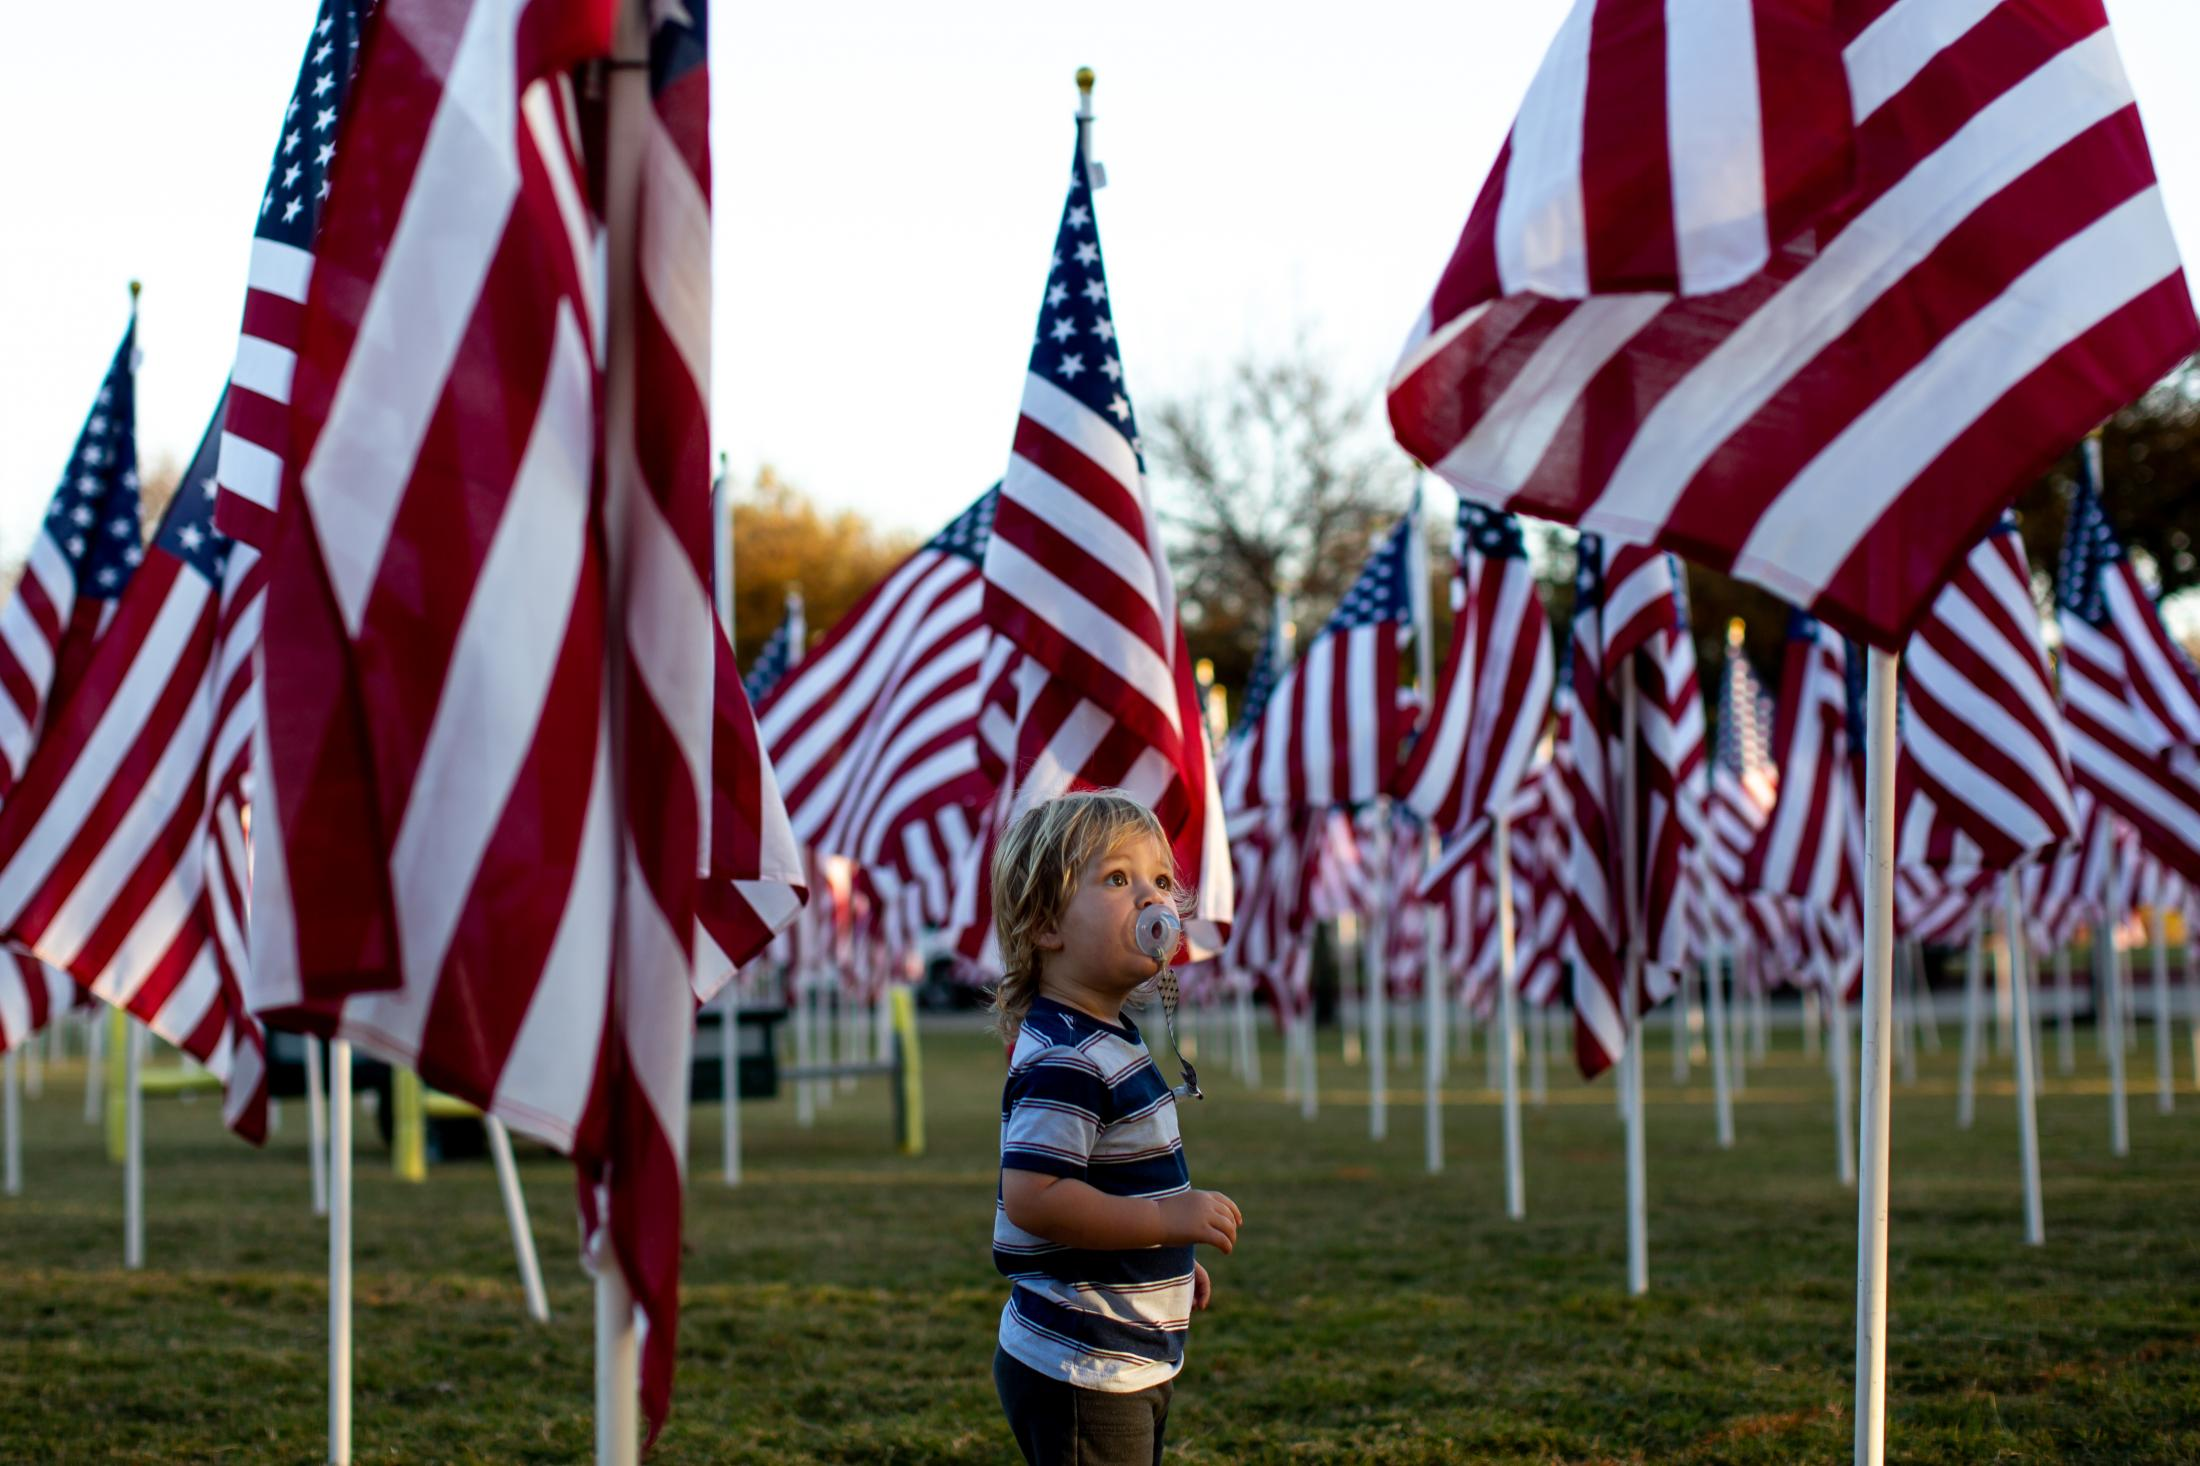 11/9/20KellerTexas - A young boy looks up at an American flags during the third day of the Keller Town Hall, Field of Honor.